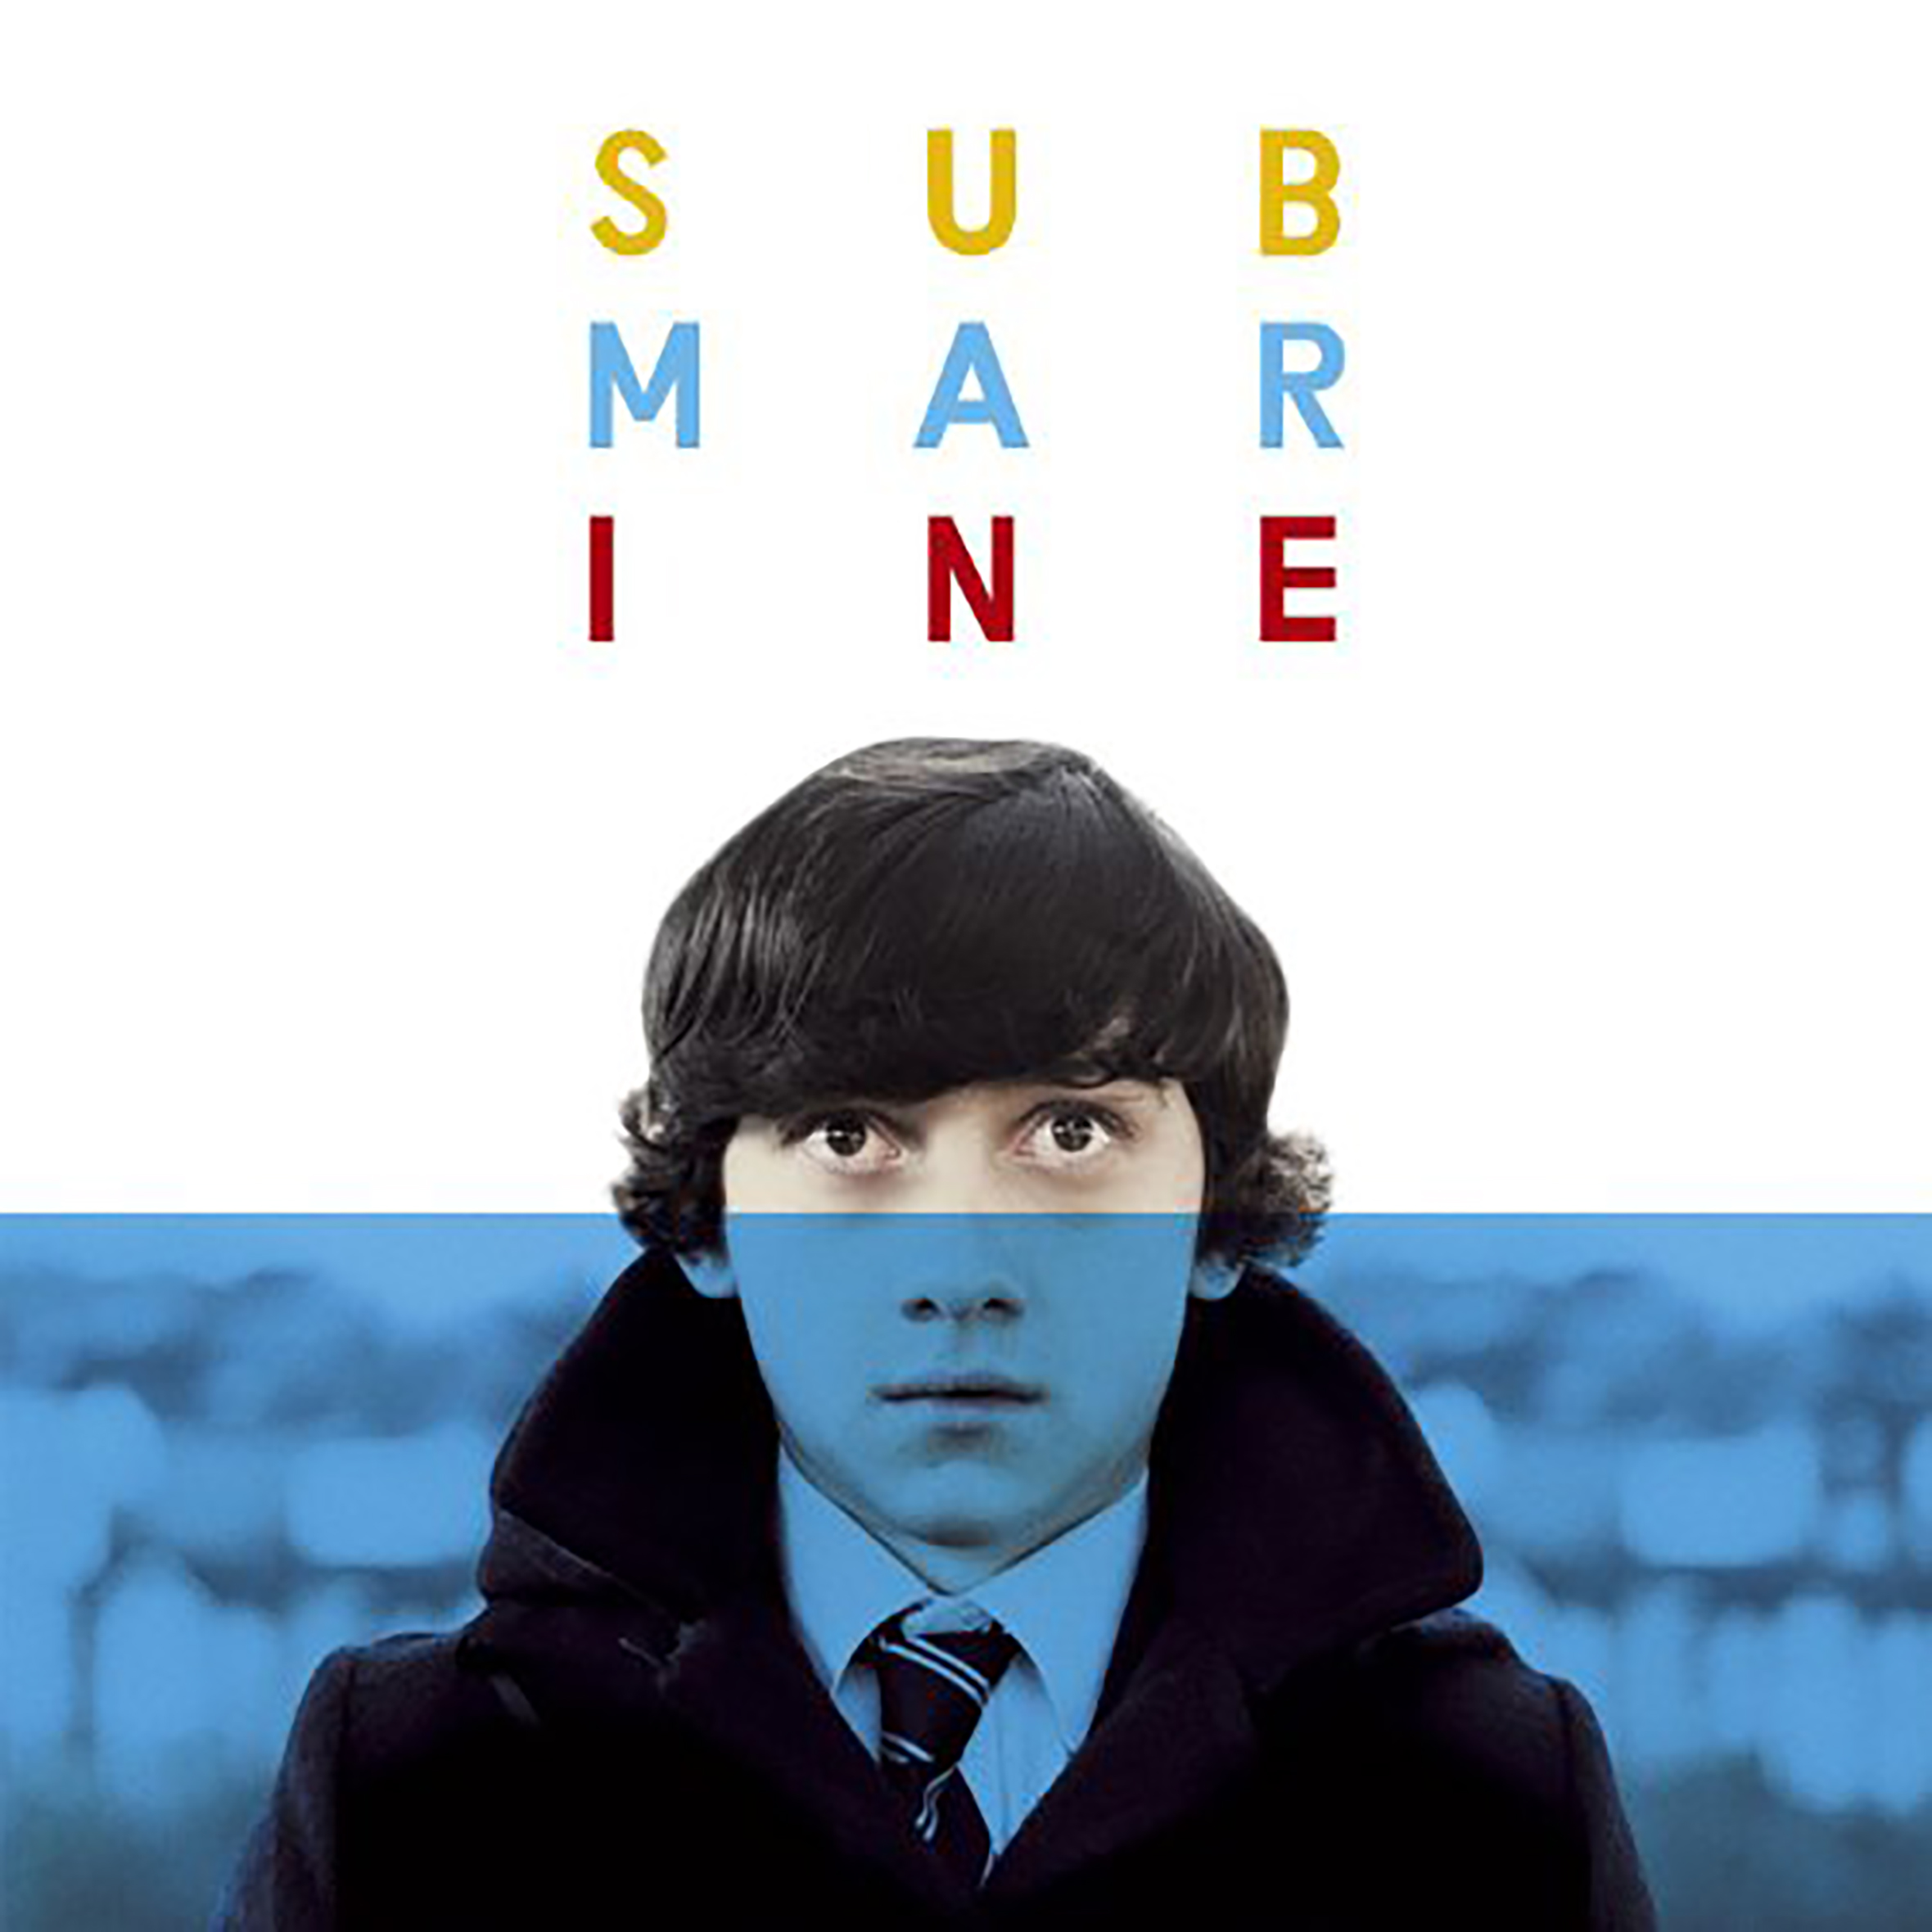 Submarine movie poster featuring the main character Oliver